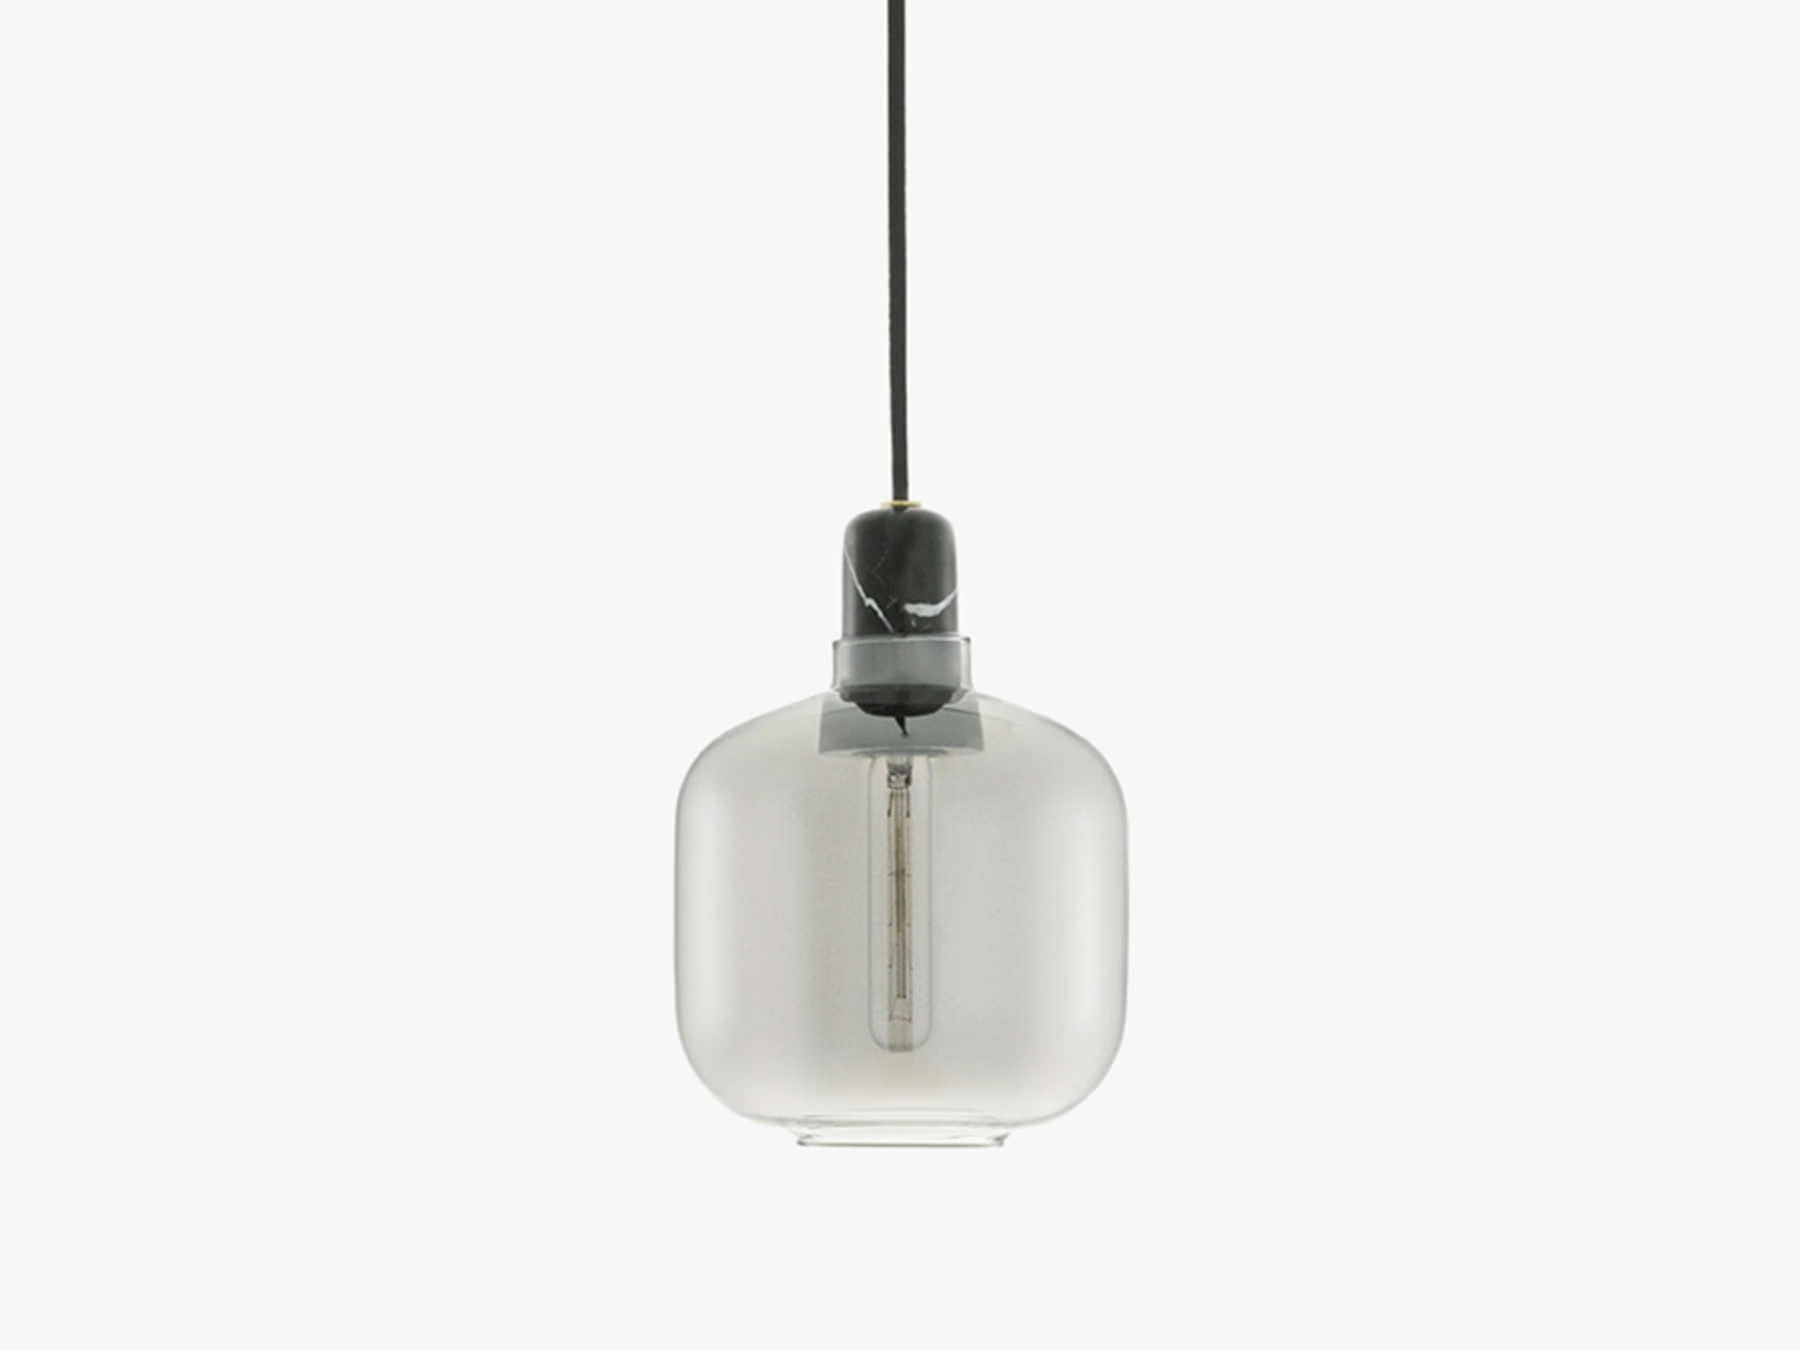 Amp Small, Smoke/Black fra Normann Copenhagen